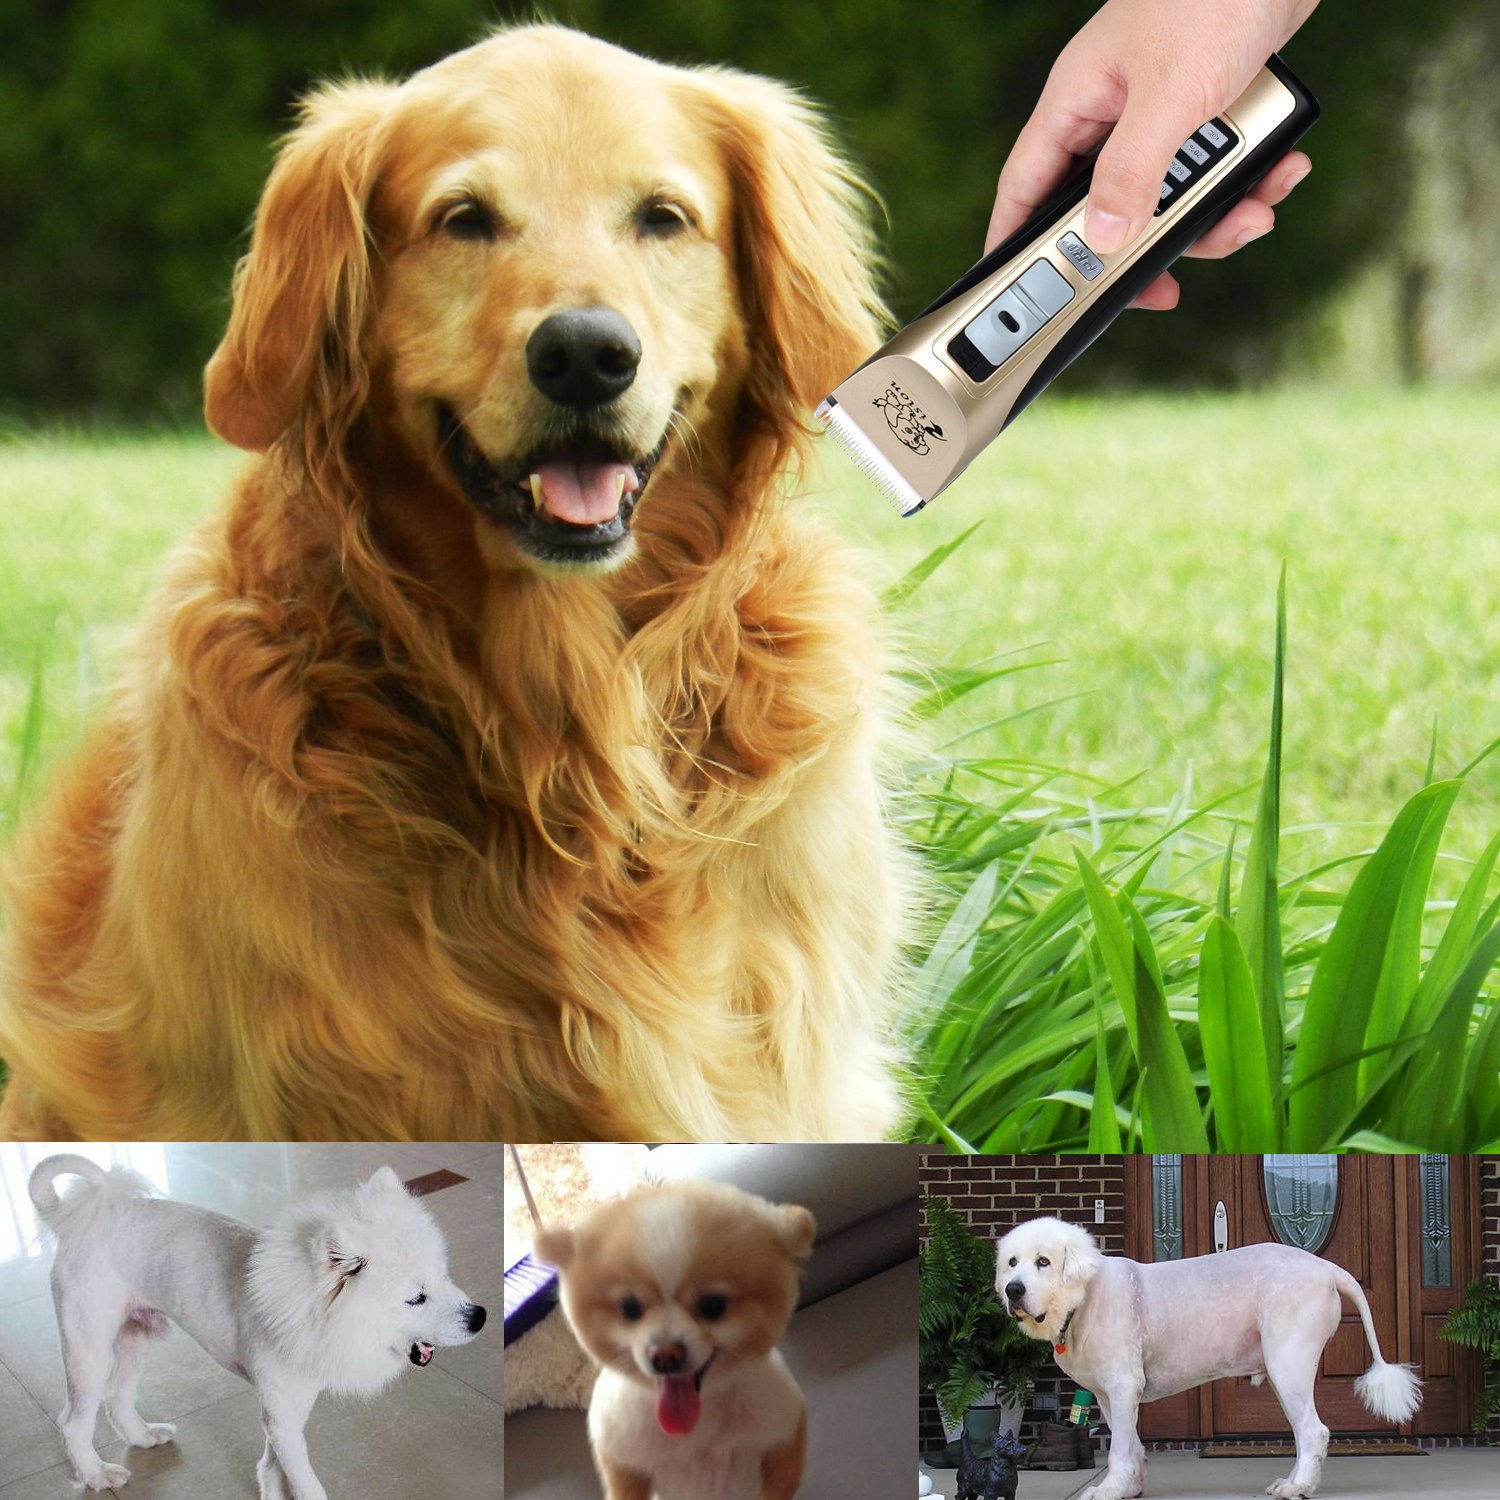 Pet Clippers, Rision Low Noise Rechargeable Cordless Dog Trimmers Professional Animal Grooming Shavers for Thick Hair Dogs, Cats, Rabbits and Horses by Rision (Image #2)